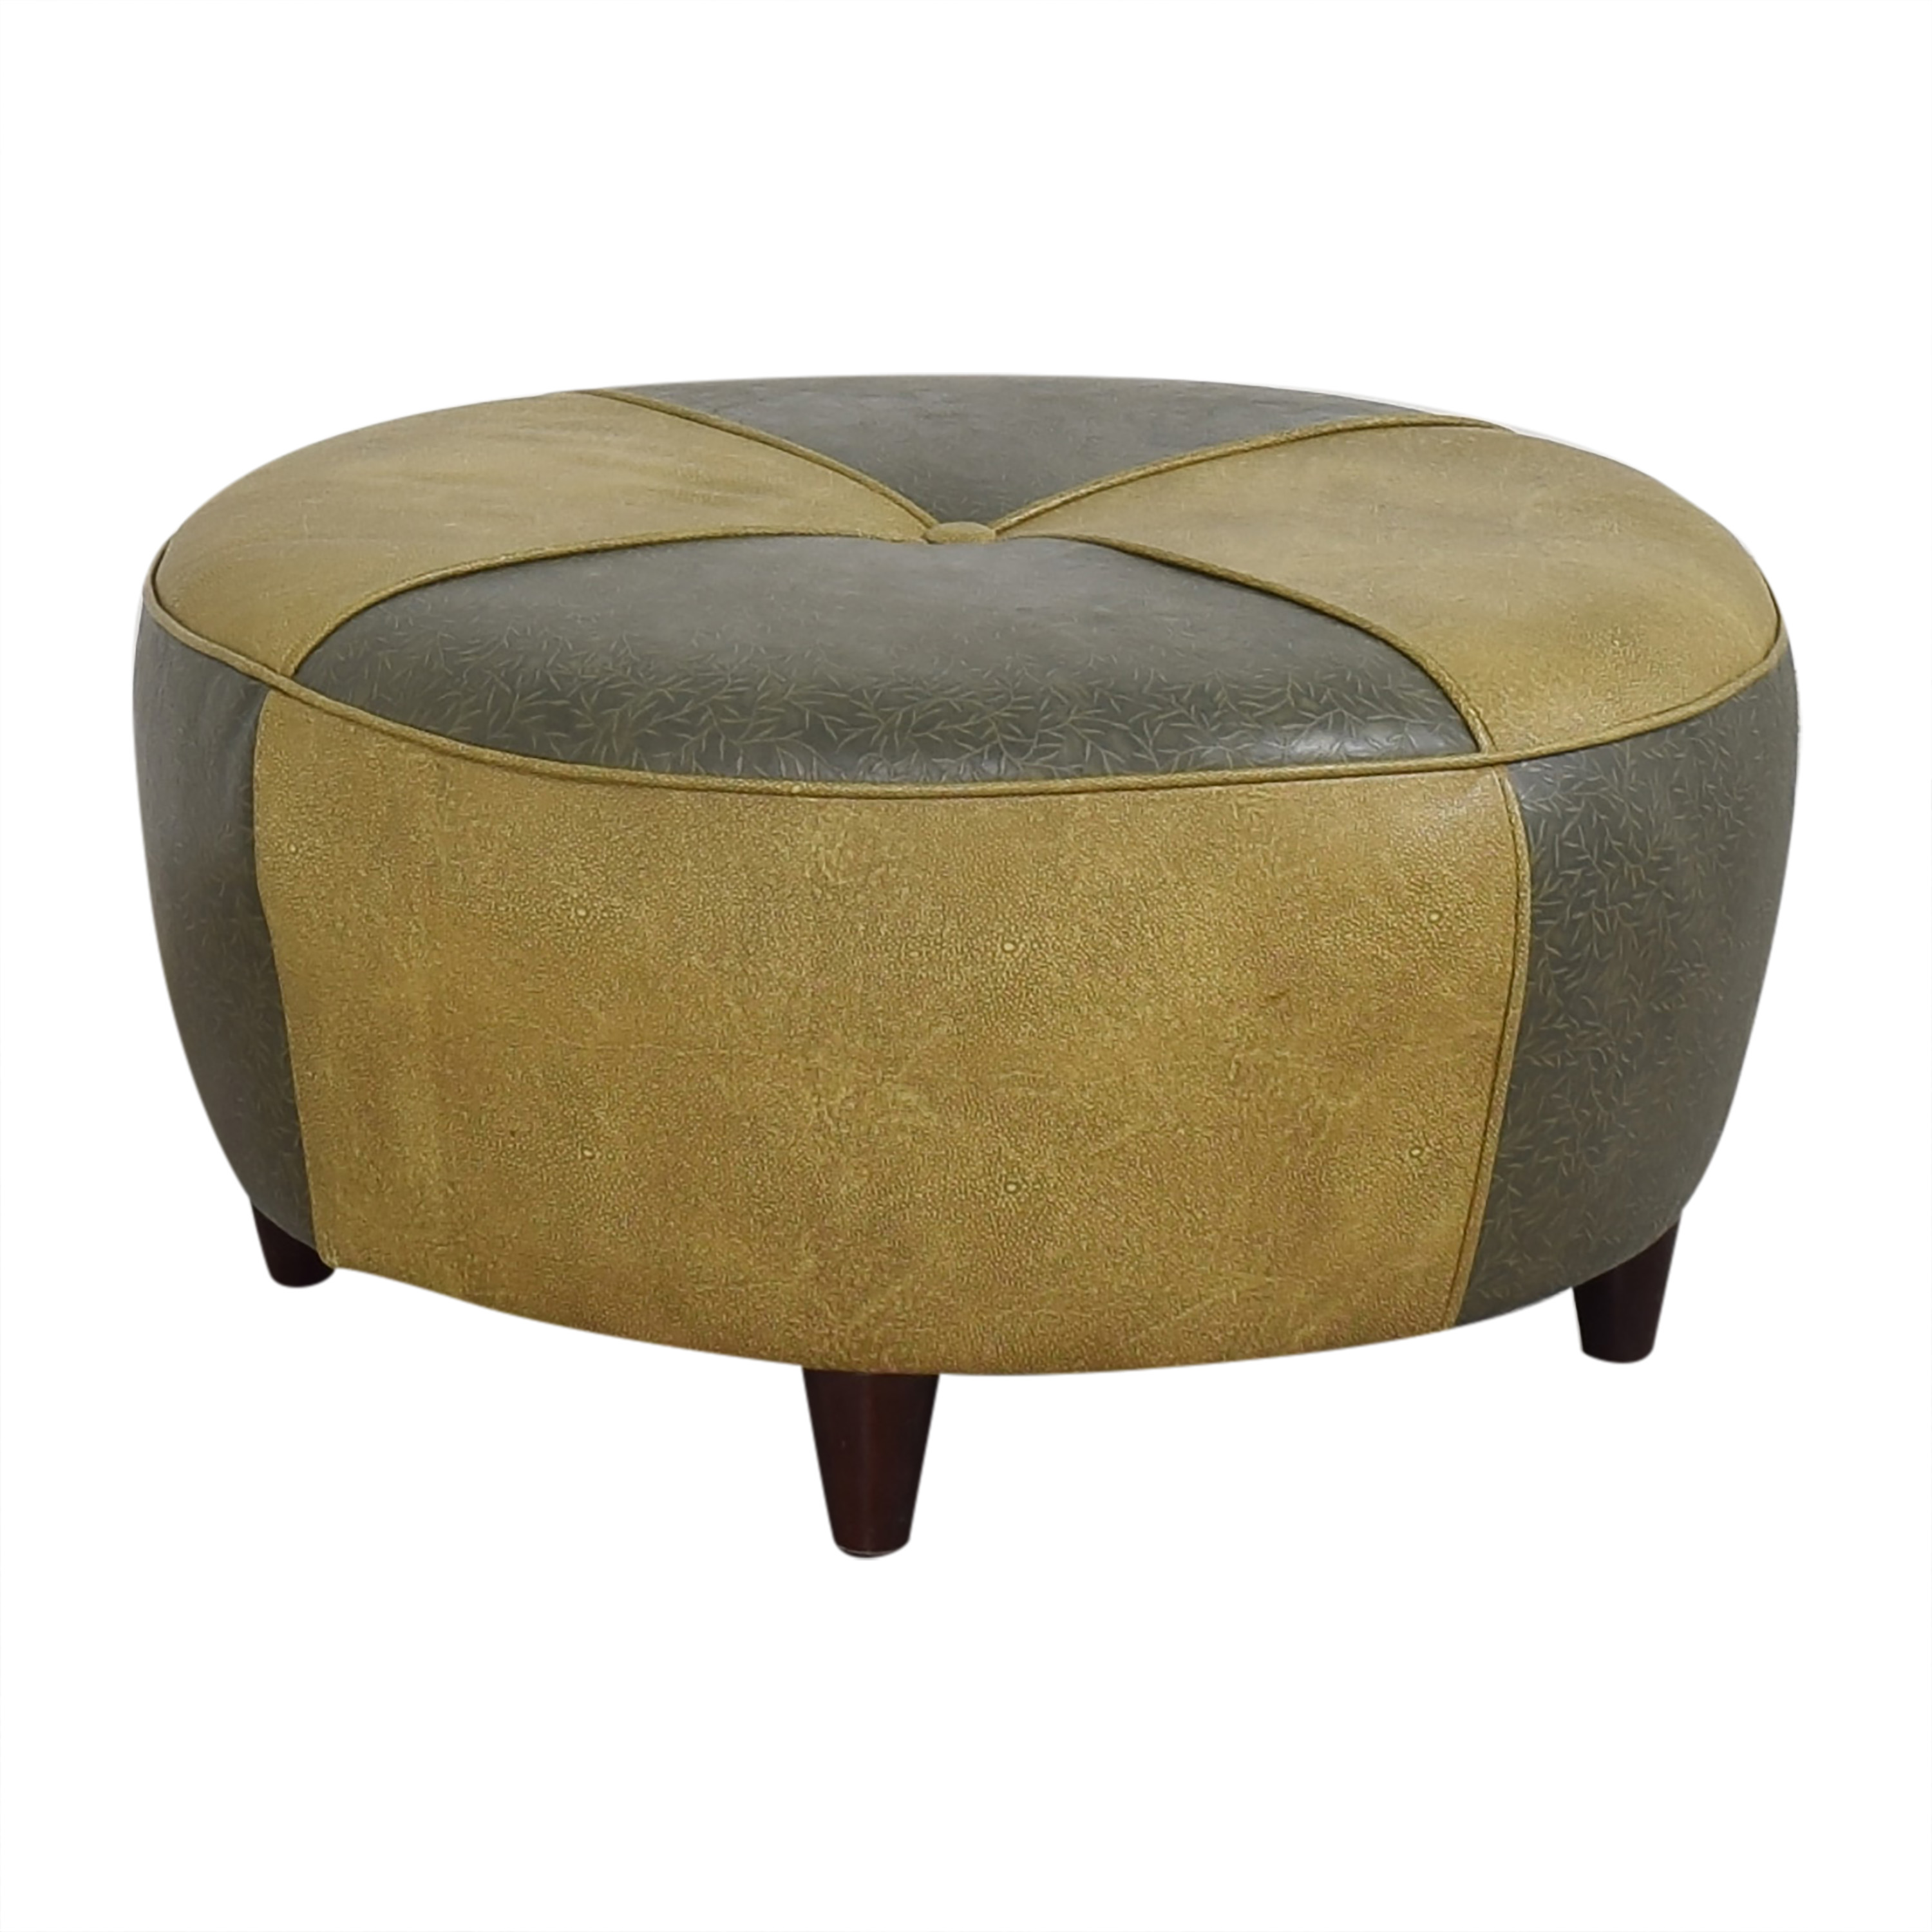 Charter Furniture Charter Furniture Two Tone Round Ottoman dimensions